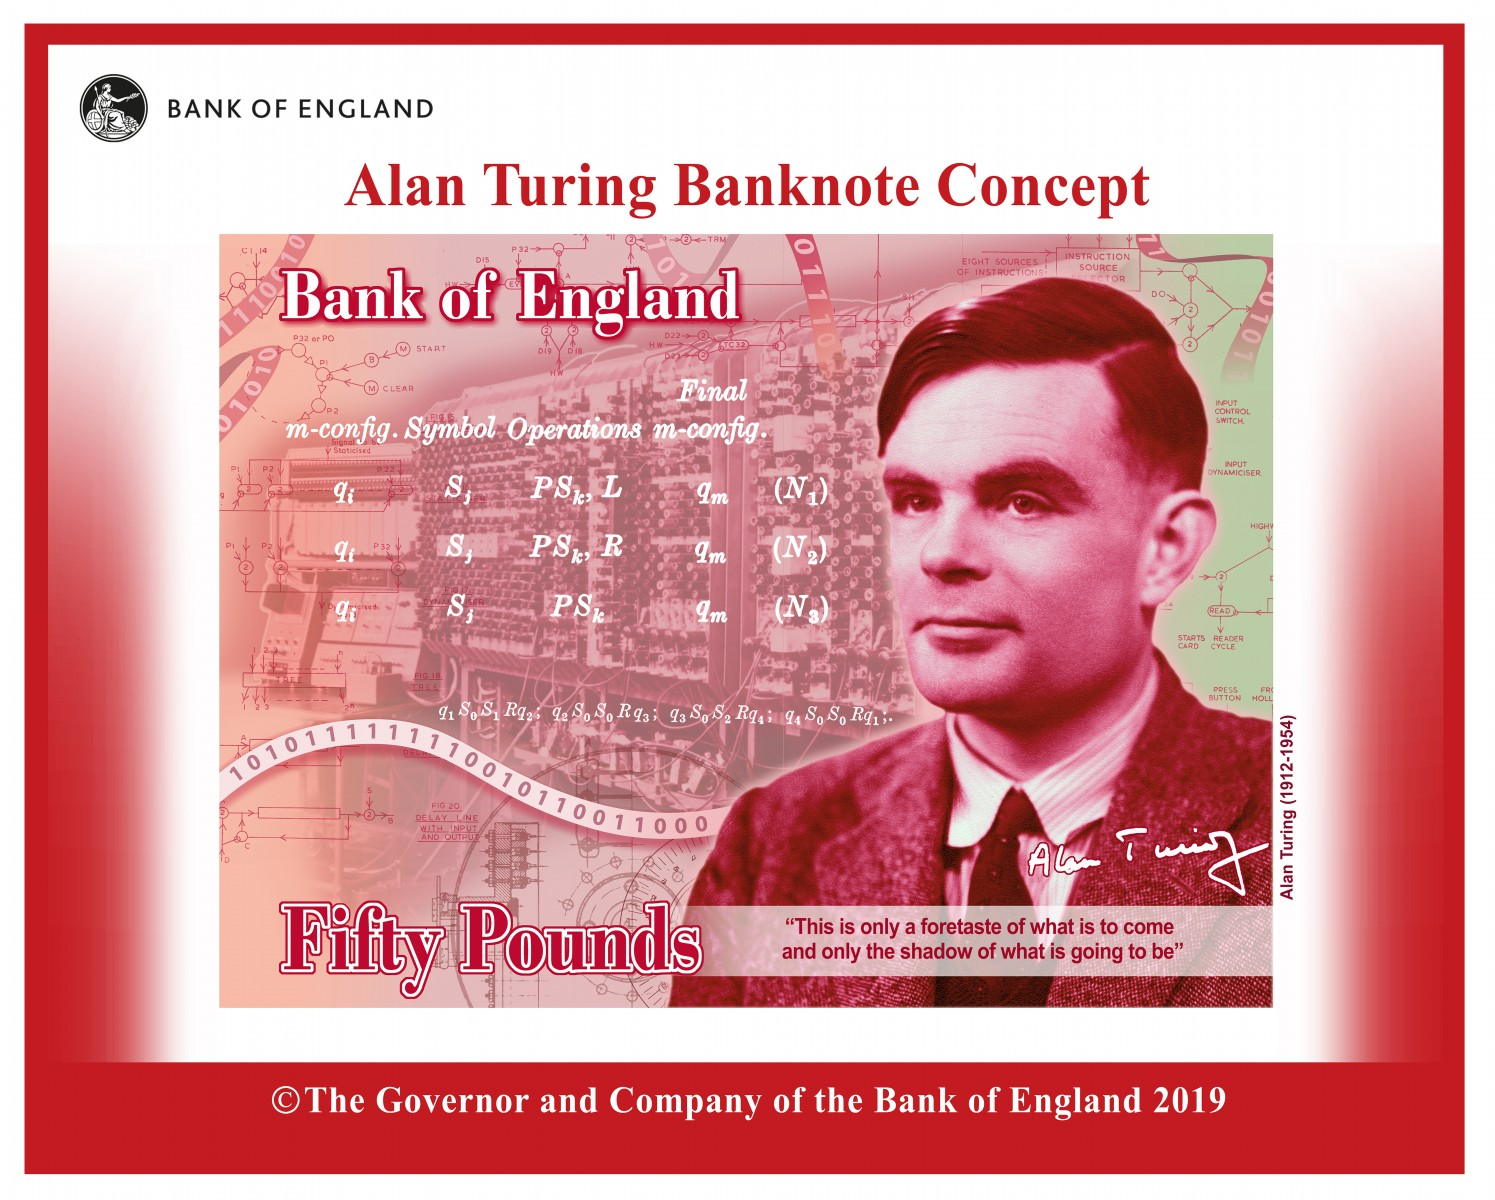 Concept image of Alan Turing on new £50 note